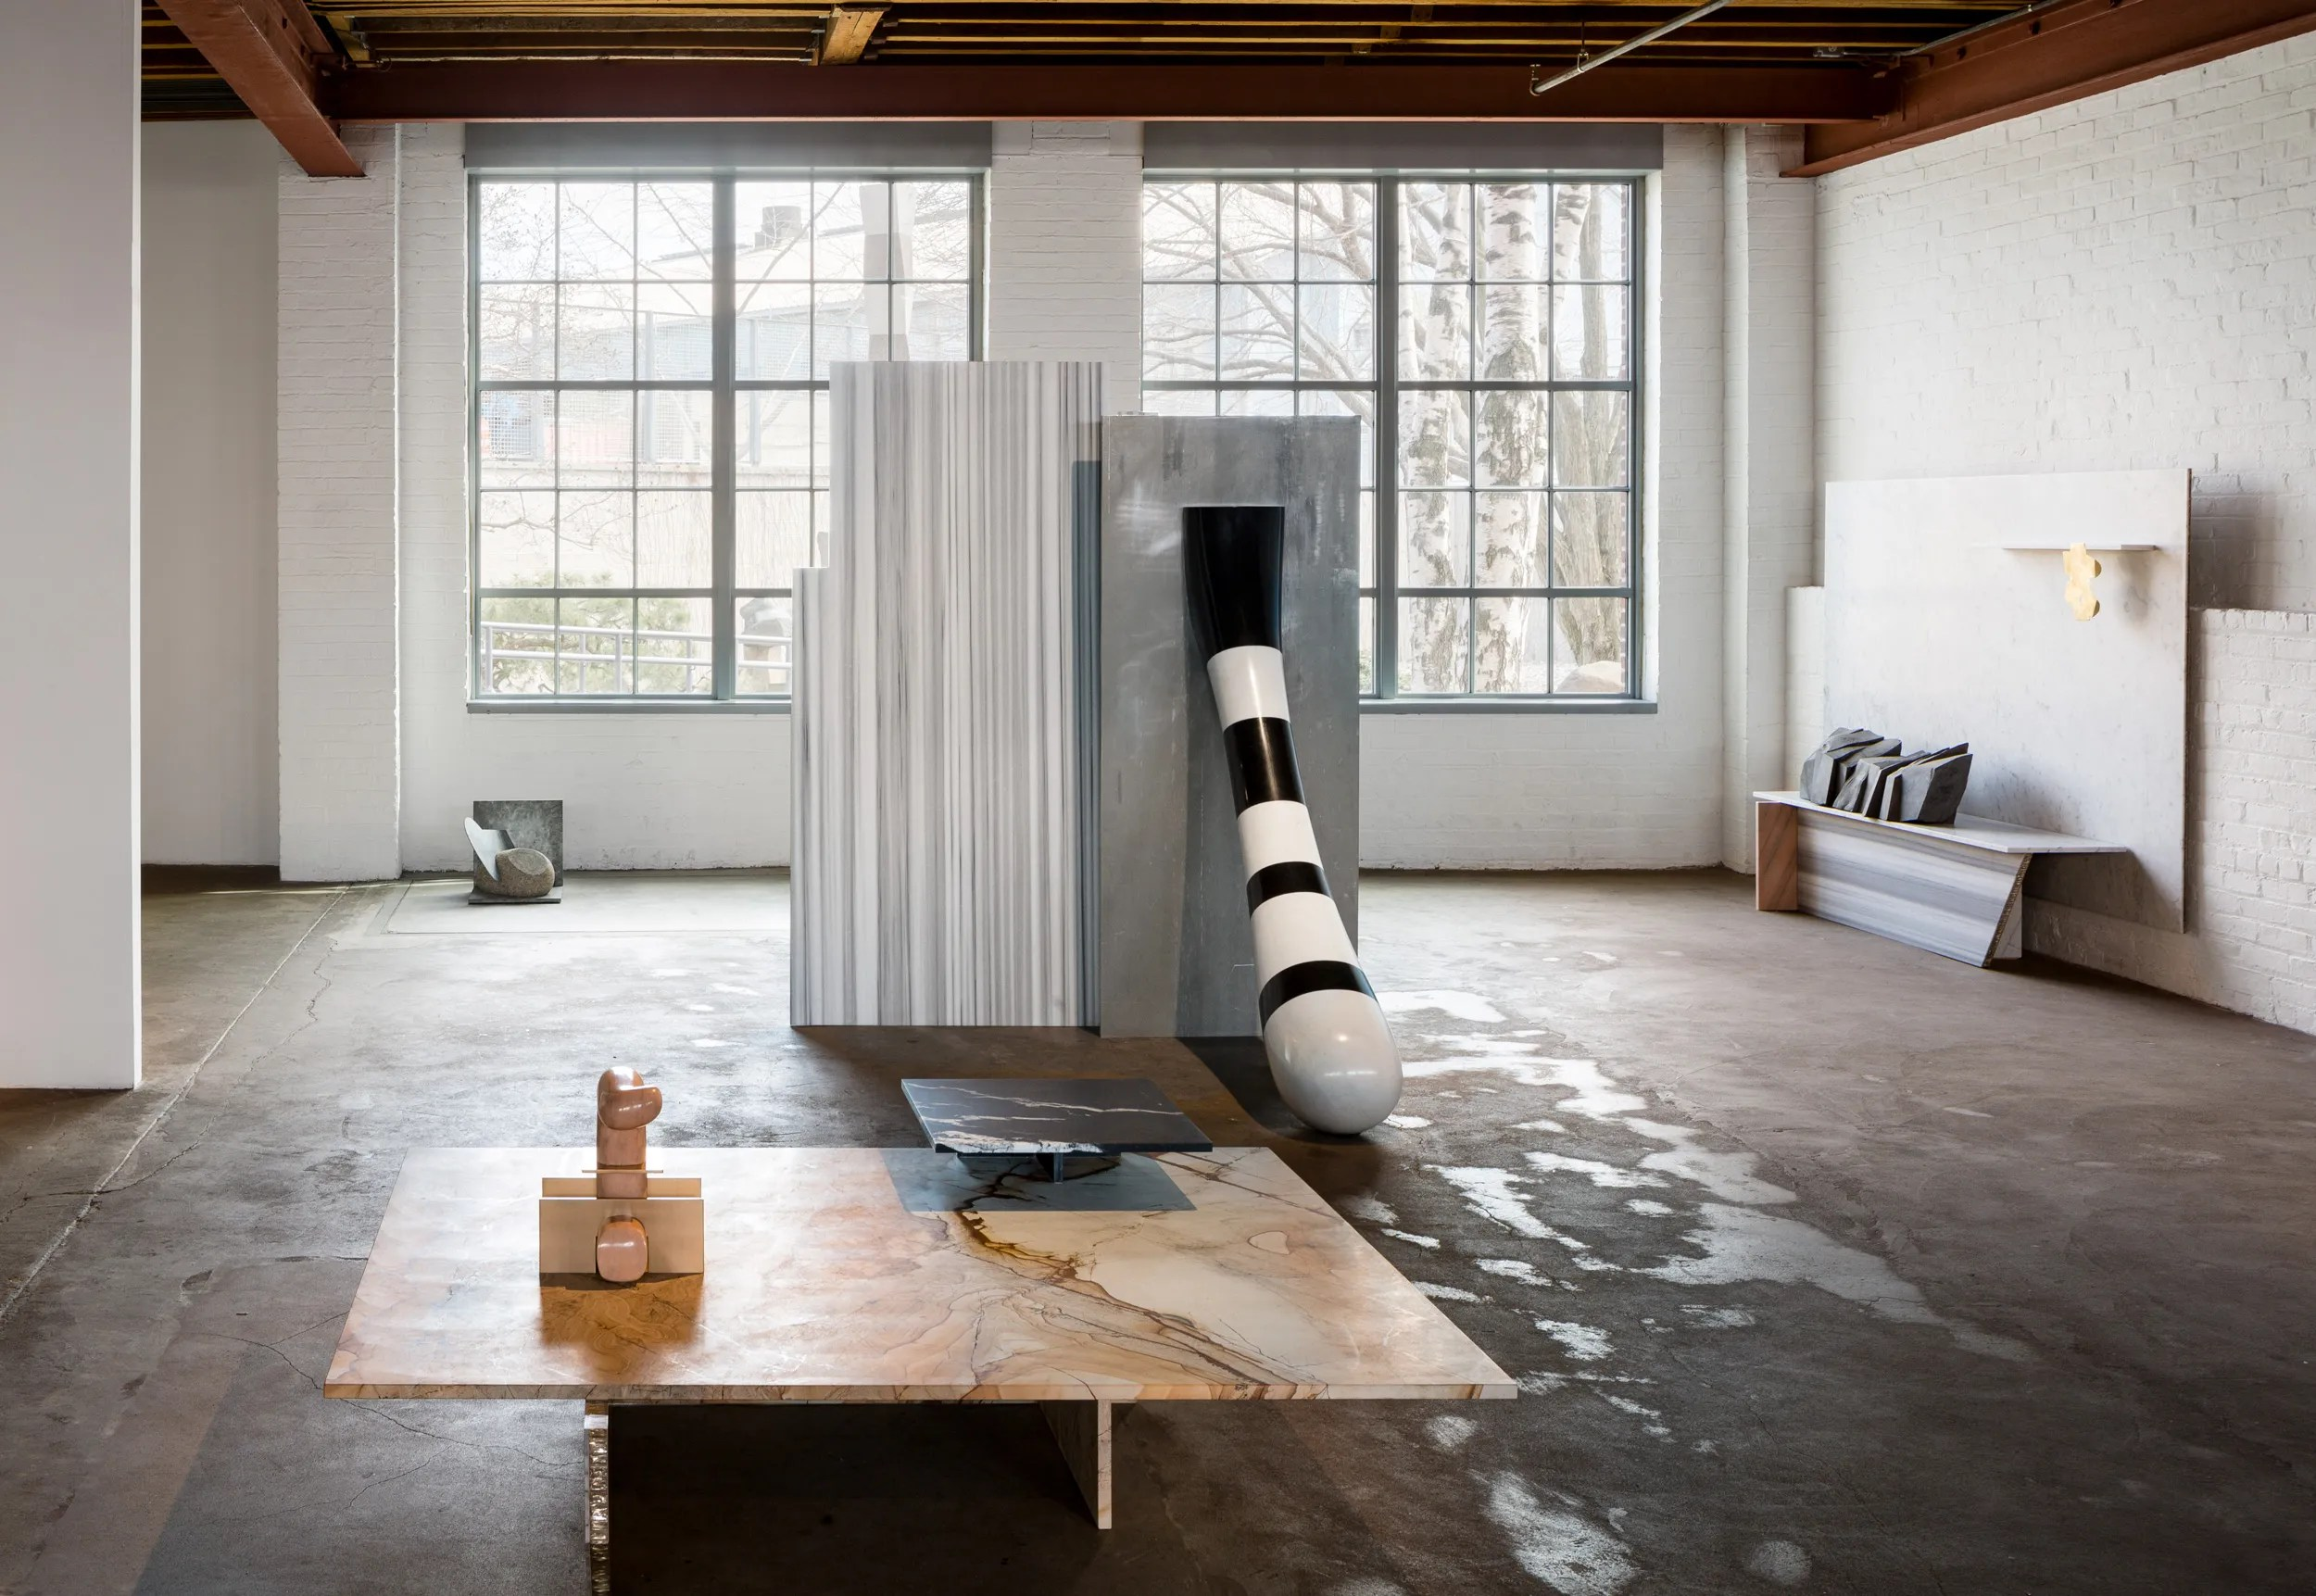 Isamu Noguchi Art And Design Merge In The Noguchi Museum's Latest